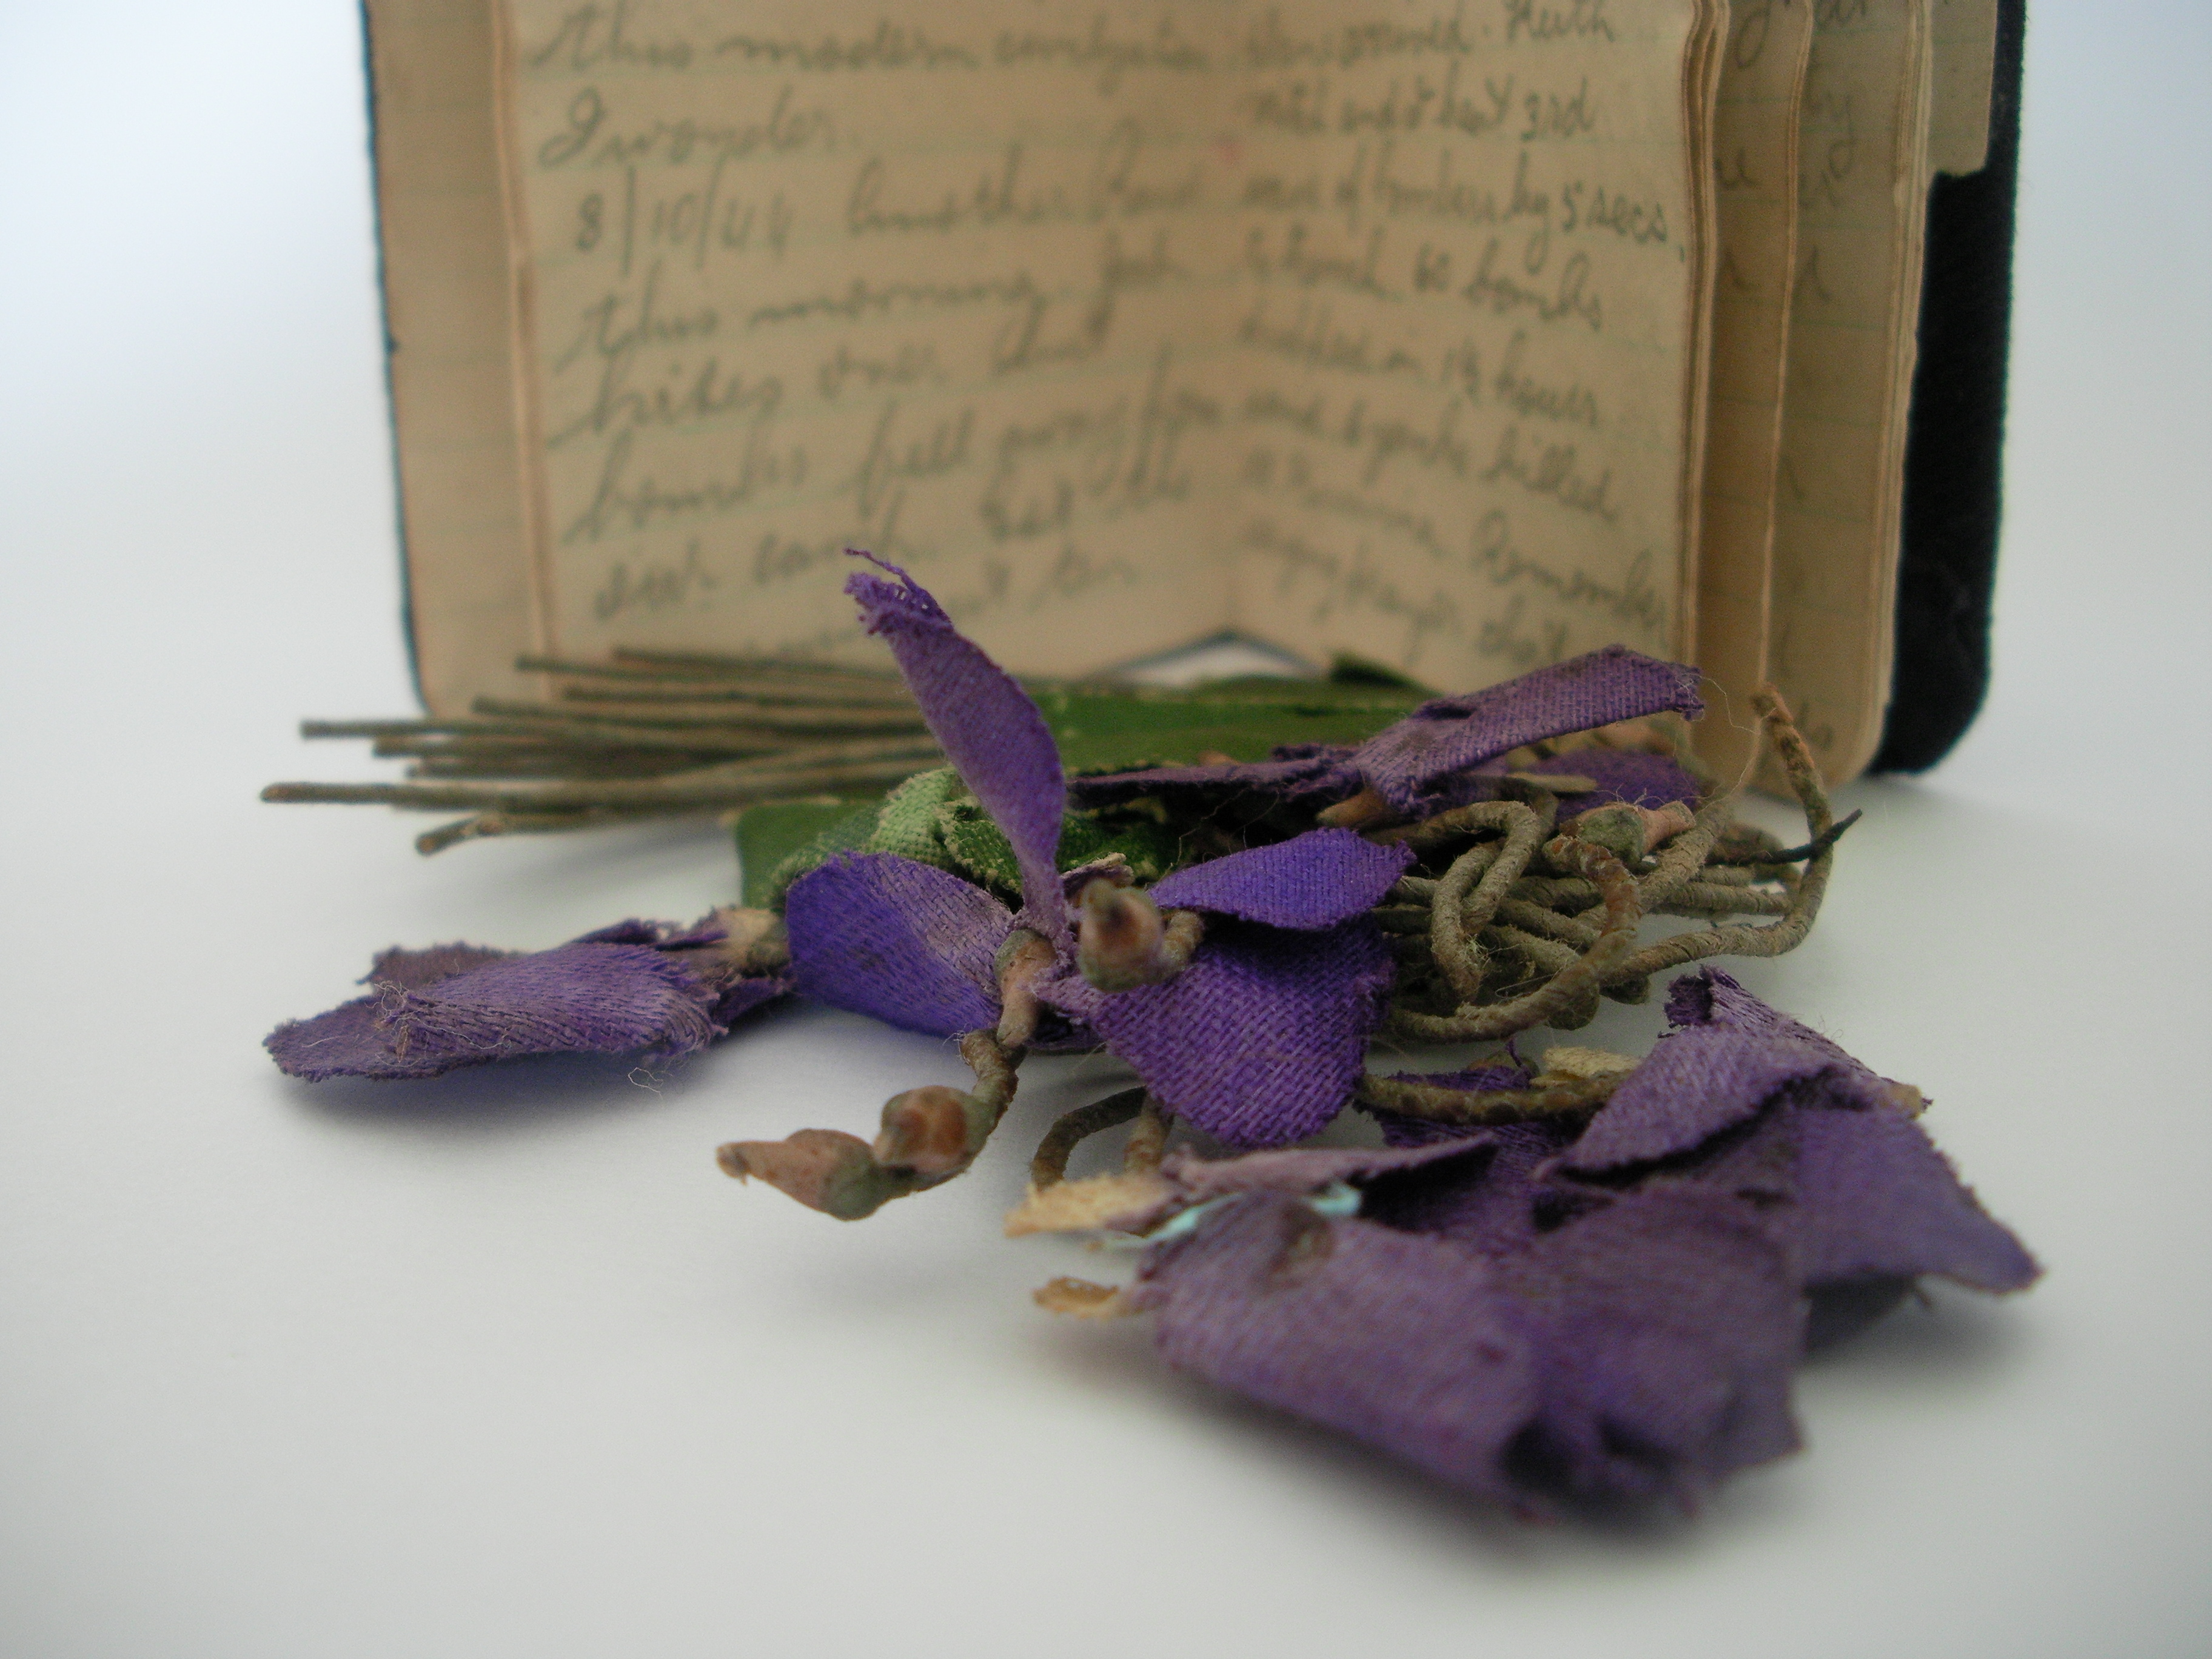 Shirley Shade (later my grandmother Noonan) wore these artificial violets on her first 'date' with Clem. Clem later took them to war and as of 2014 they have been inseparable from his diary for 72 years. Based on the central fold and other witness marks on the Fitter IIA course group photo seen in the page header atop, I believe Clem kept the violets, his diary and that group photo close when he was abroad. Photo 2014 by Leonie (nee Noonan) and Shane Dunn.